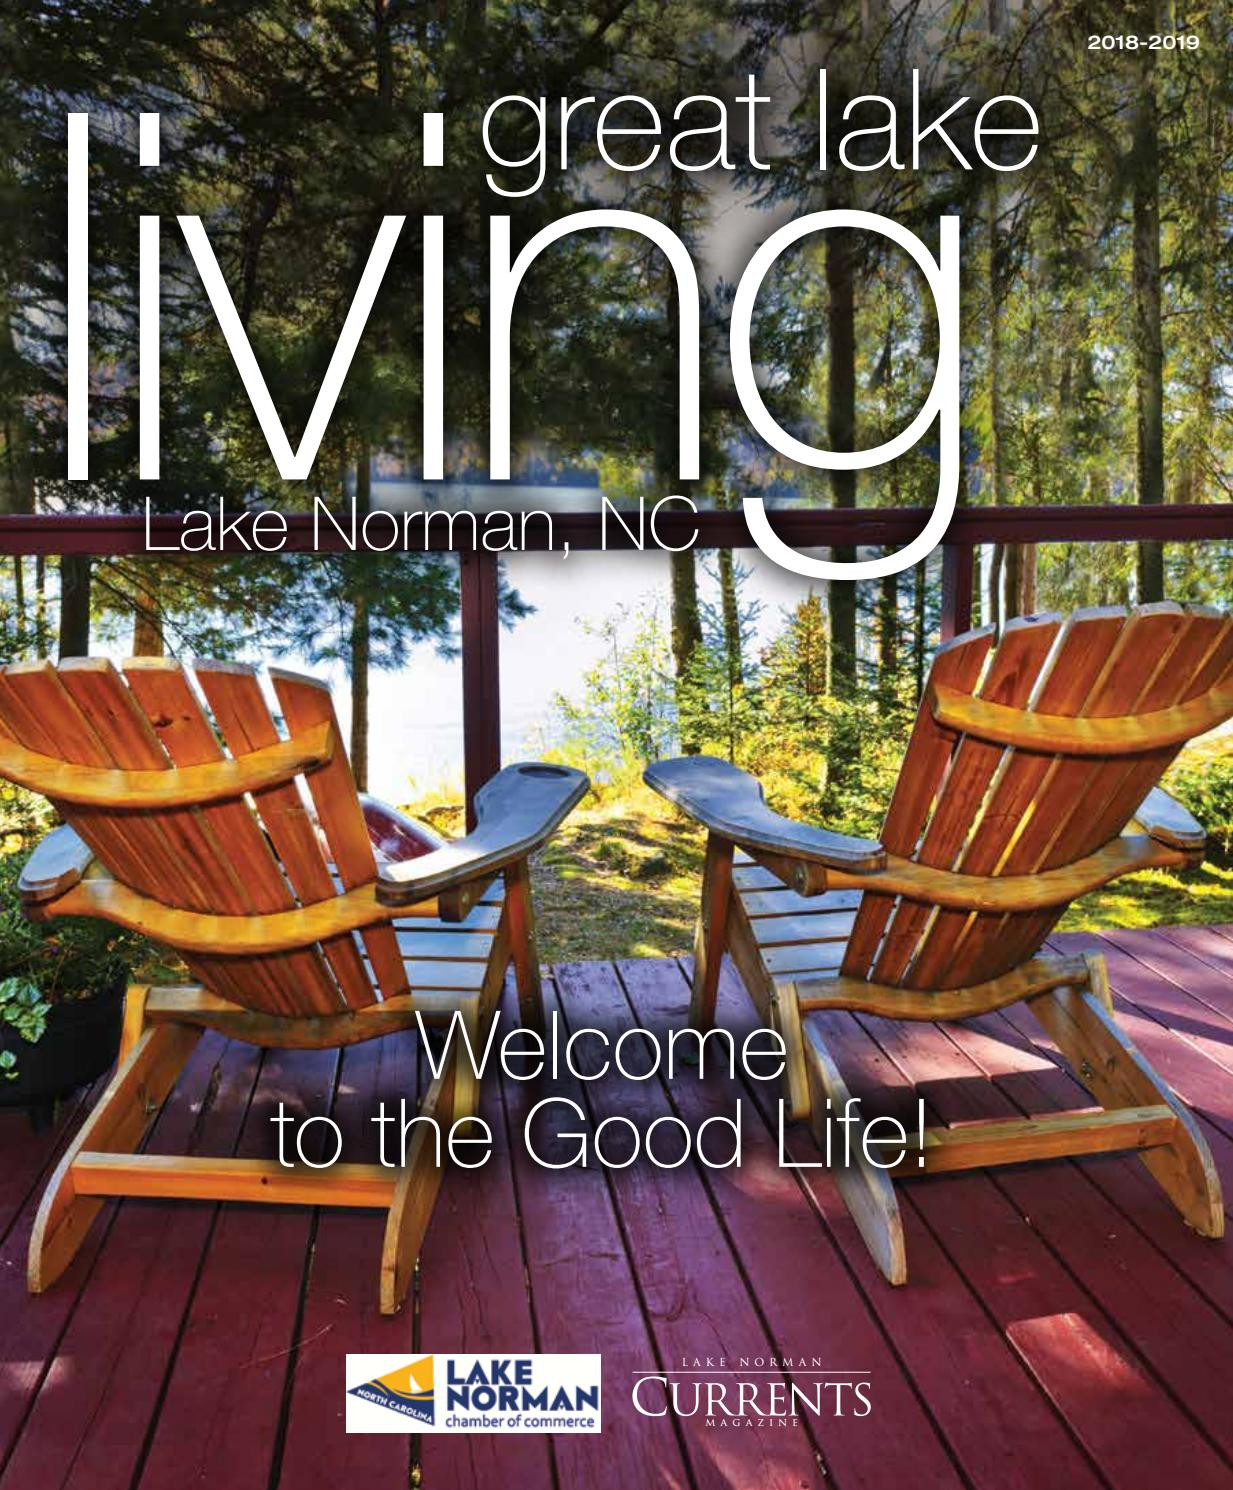 Direct Hardwood Flooring Charlotte Nc 28208 Of Great Lake Living 2018 2019 by Lake norman Currents issuu with Regard to Page 1